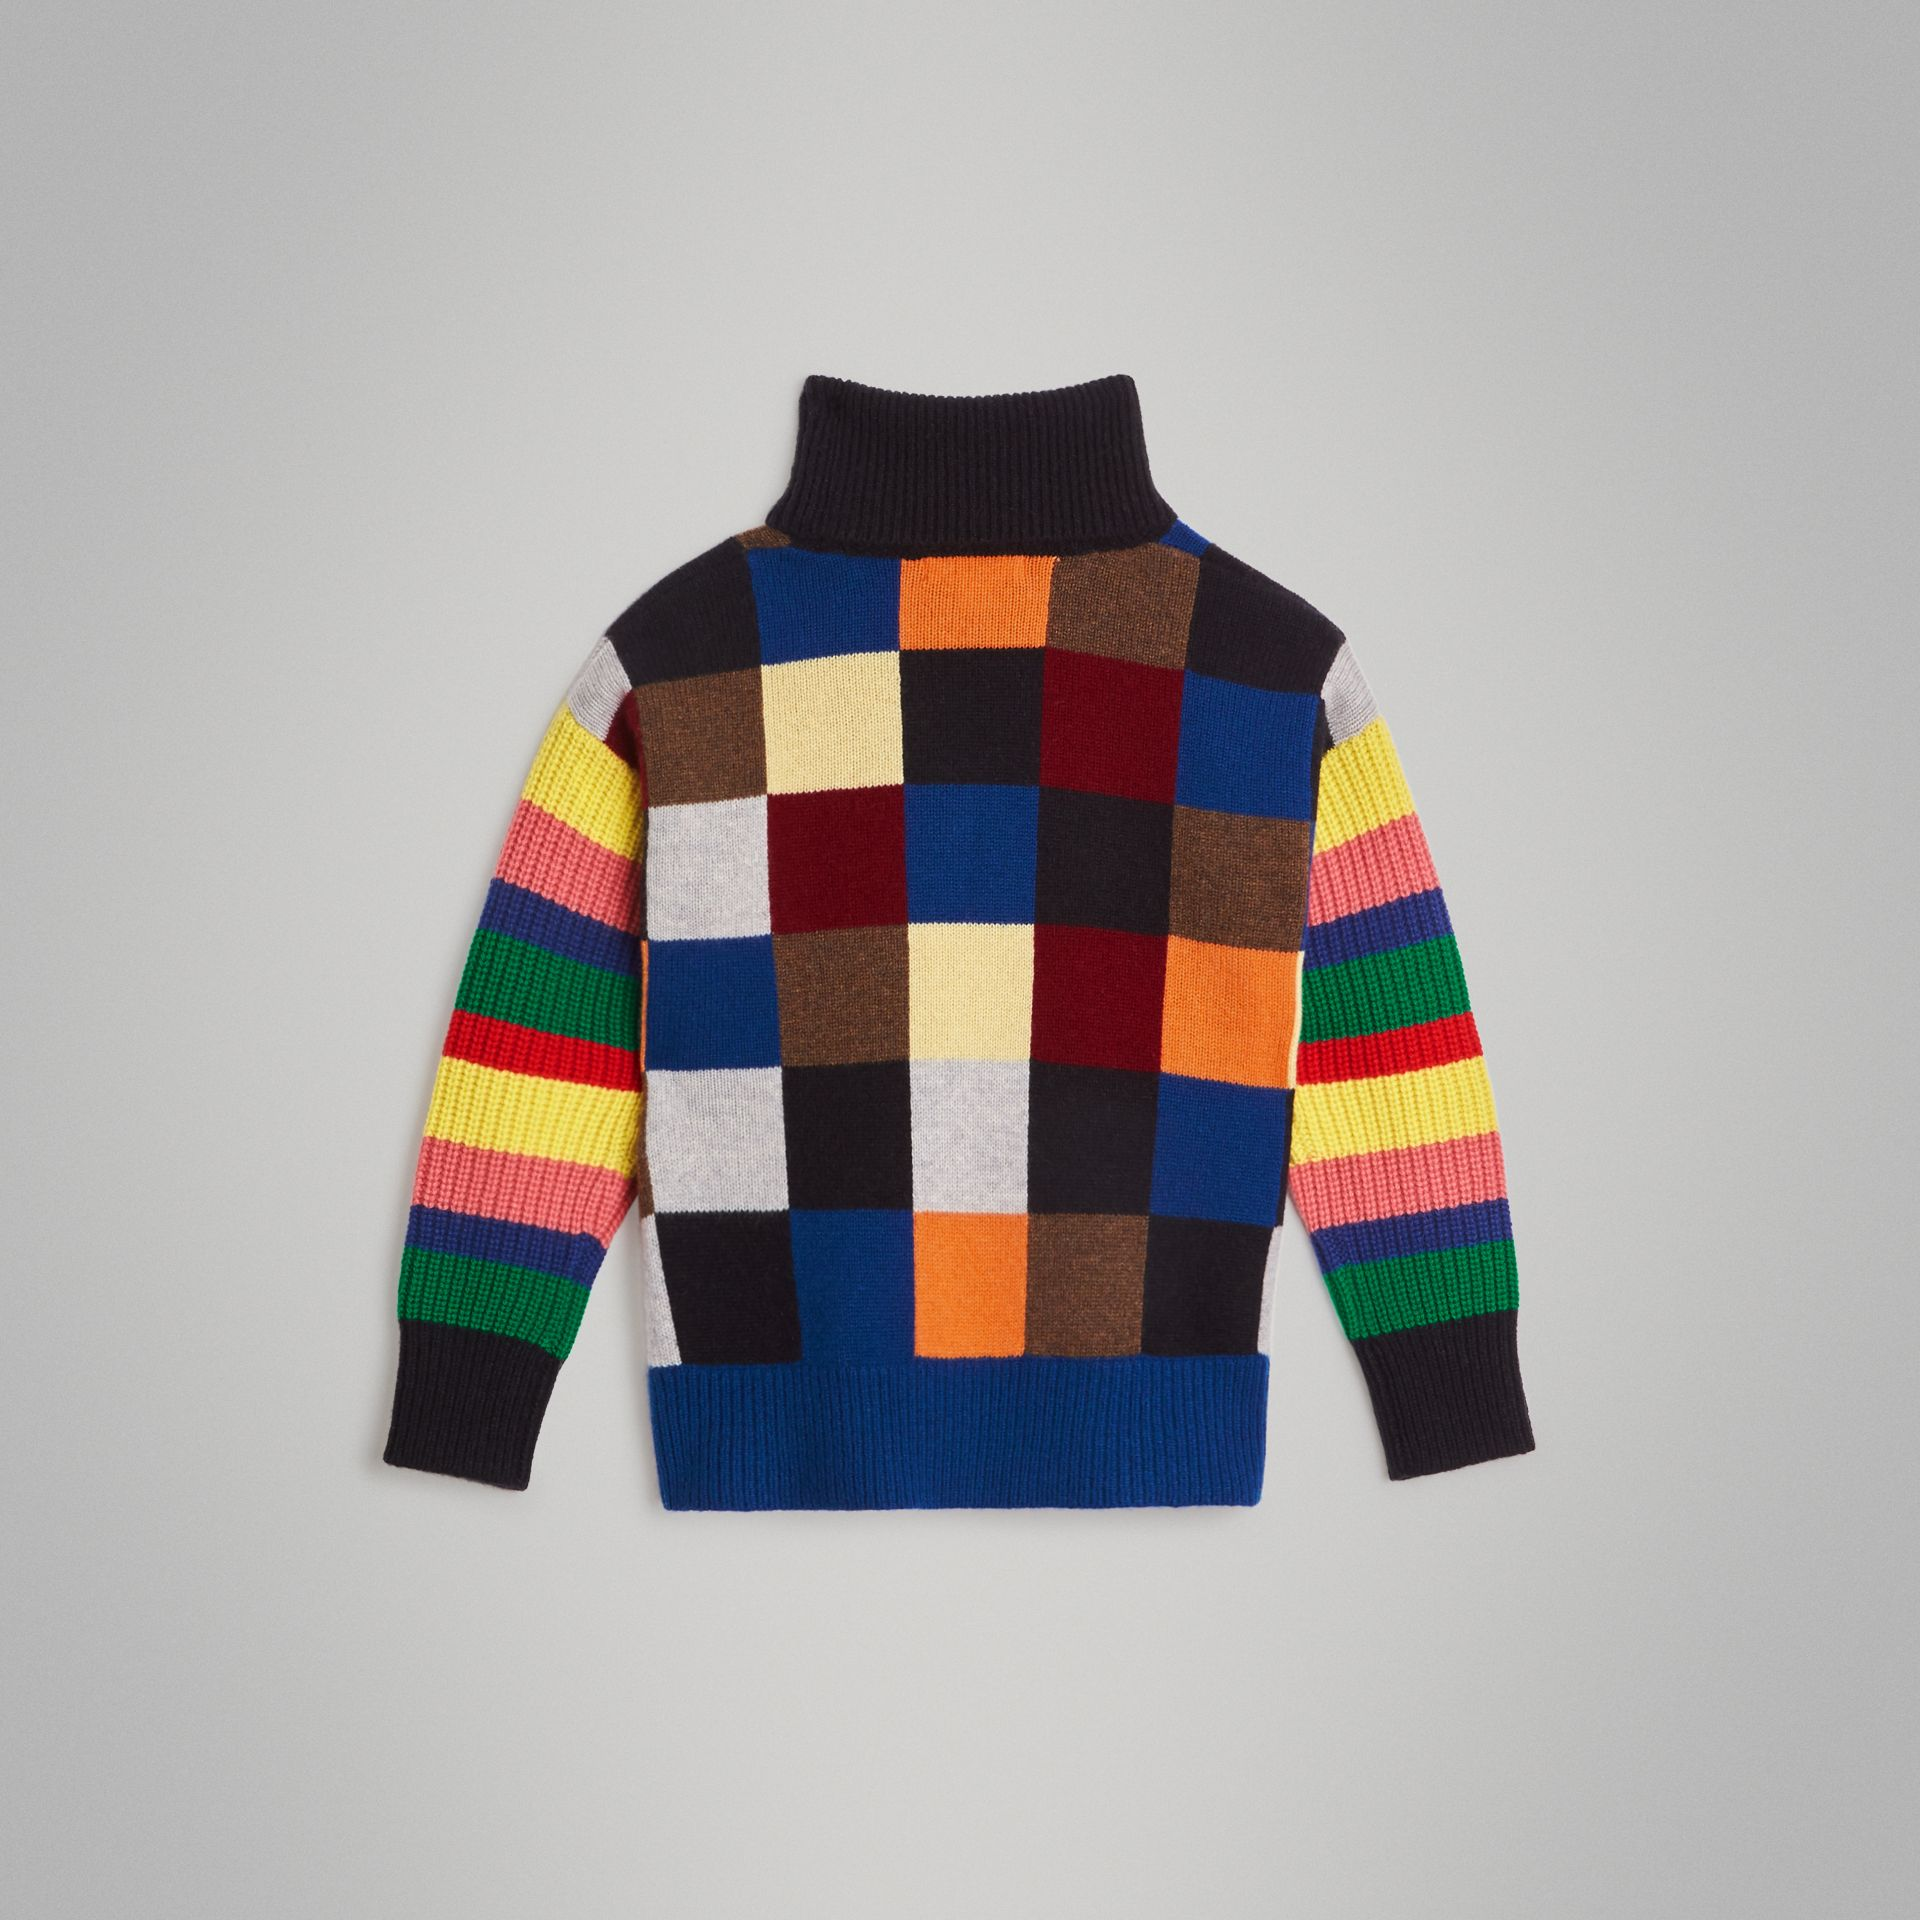 Patchwork Cashmere Roll-neck Sweater in Multicolour | Burberry - gallery image 3